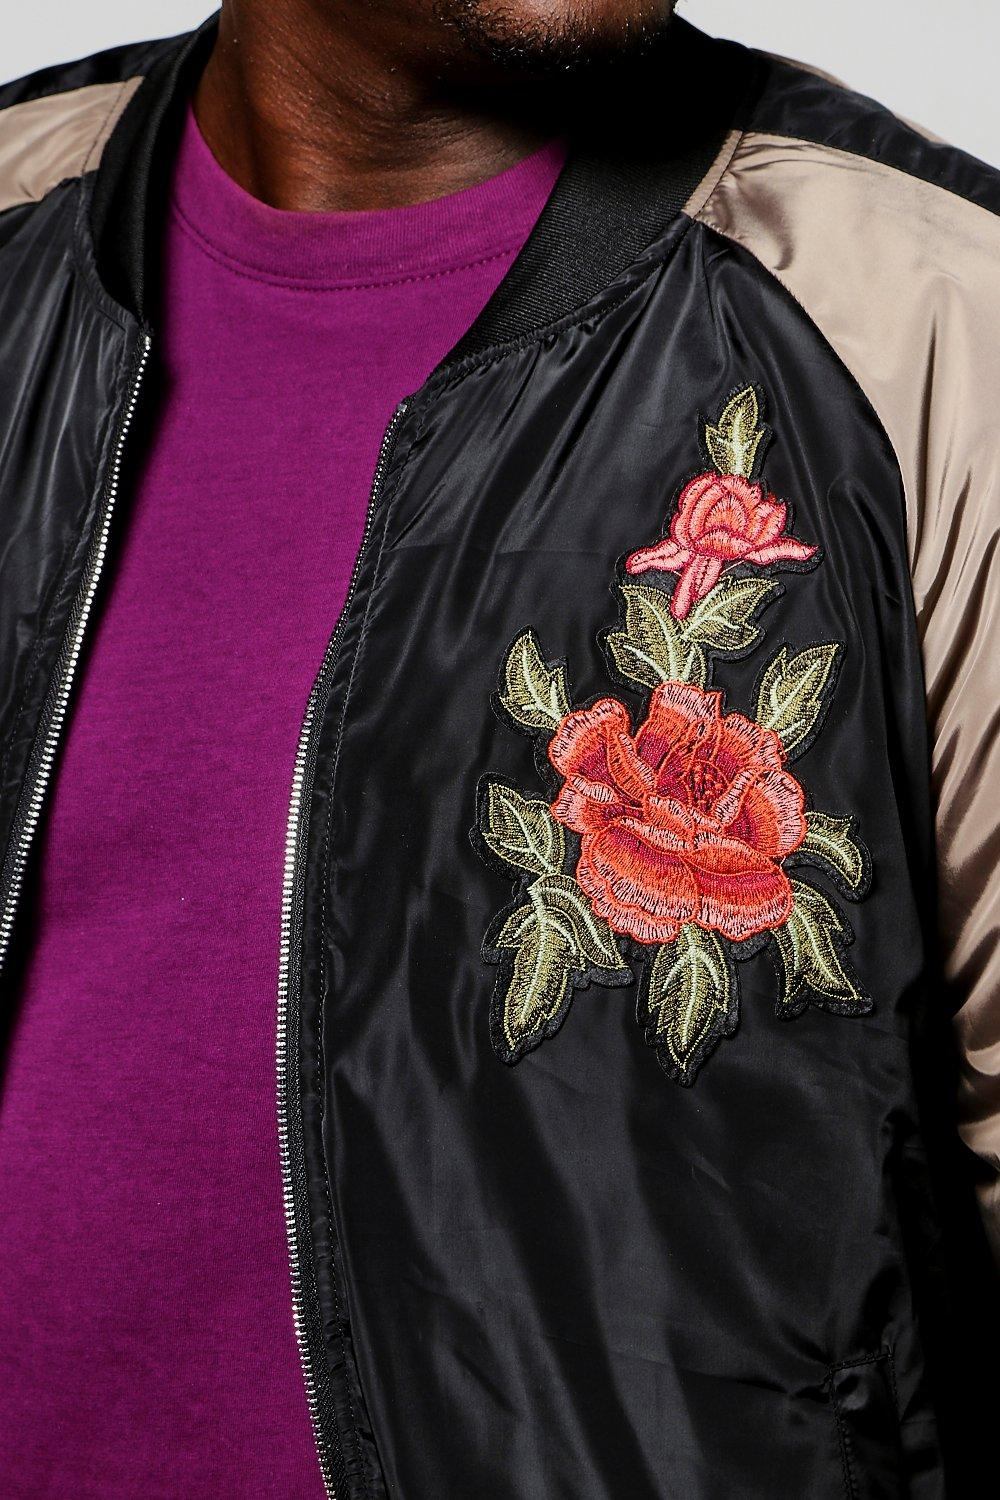 SOUVENIR ROSE JACKET